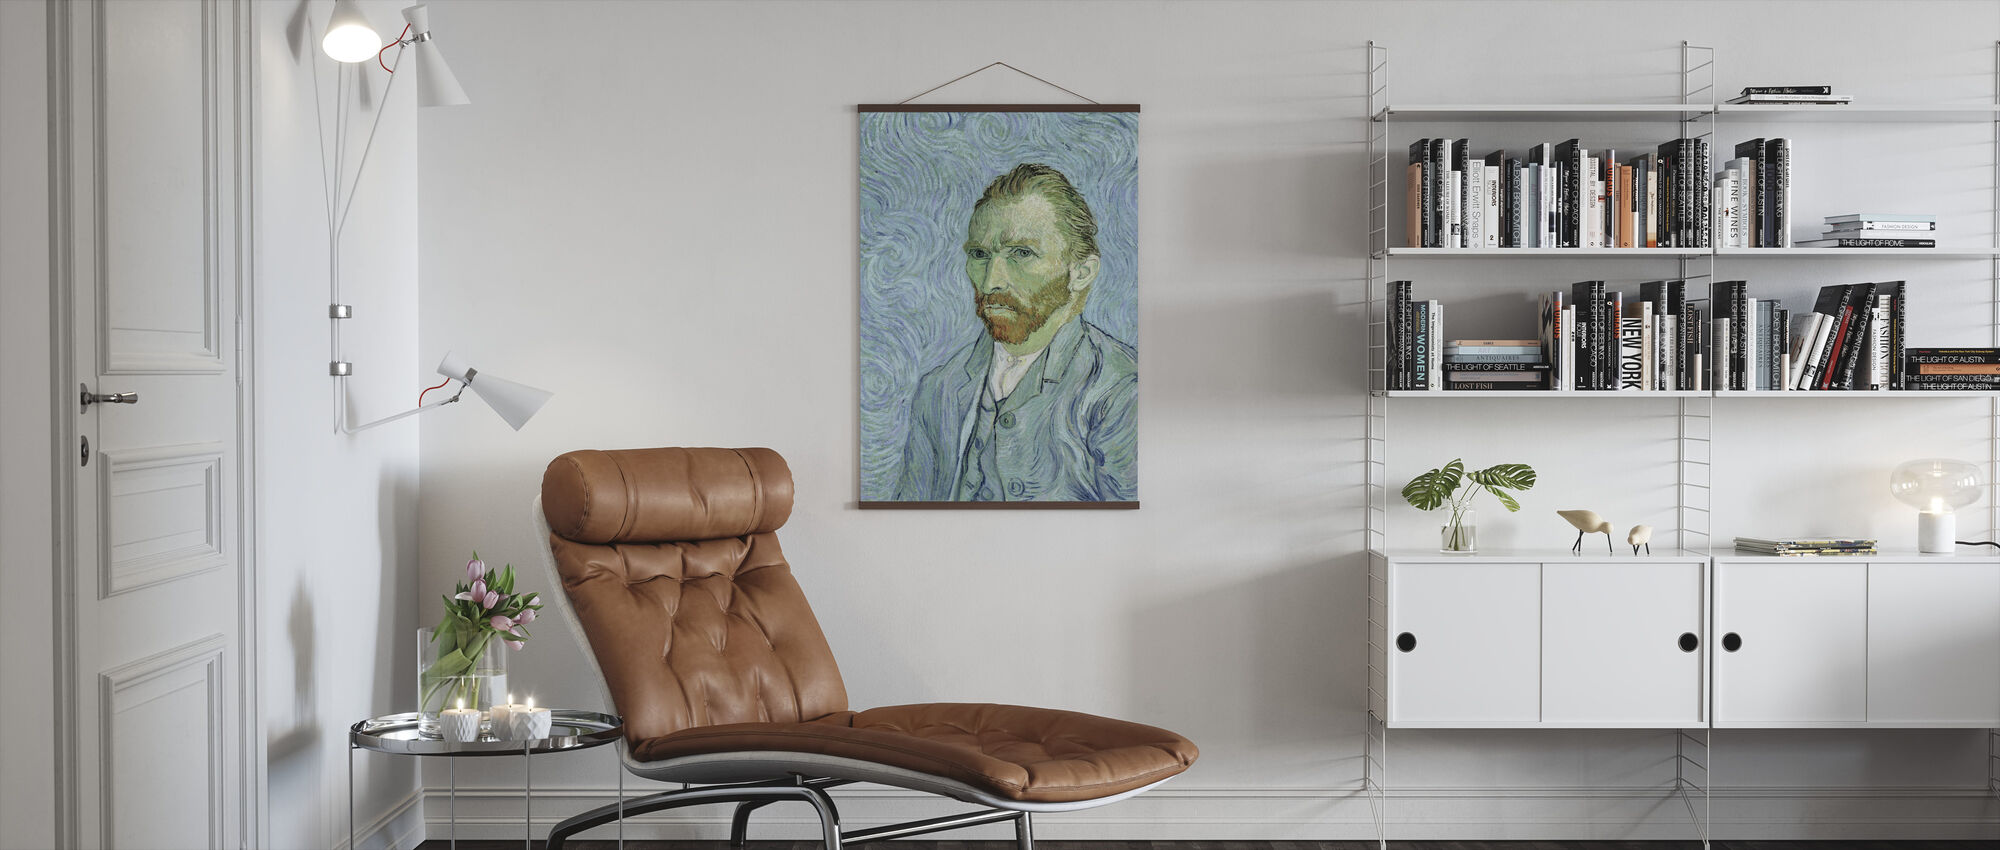 Self portrait, Vincent van Gogh - Poster - Living Room